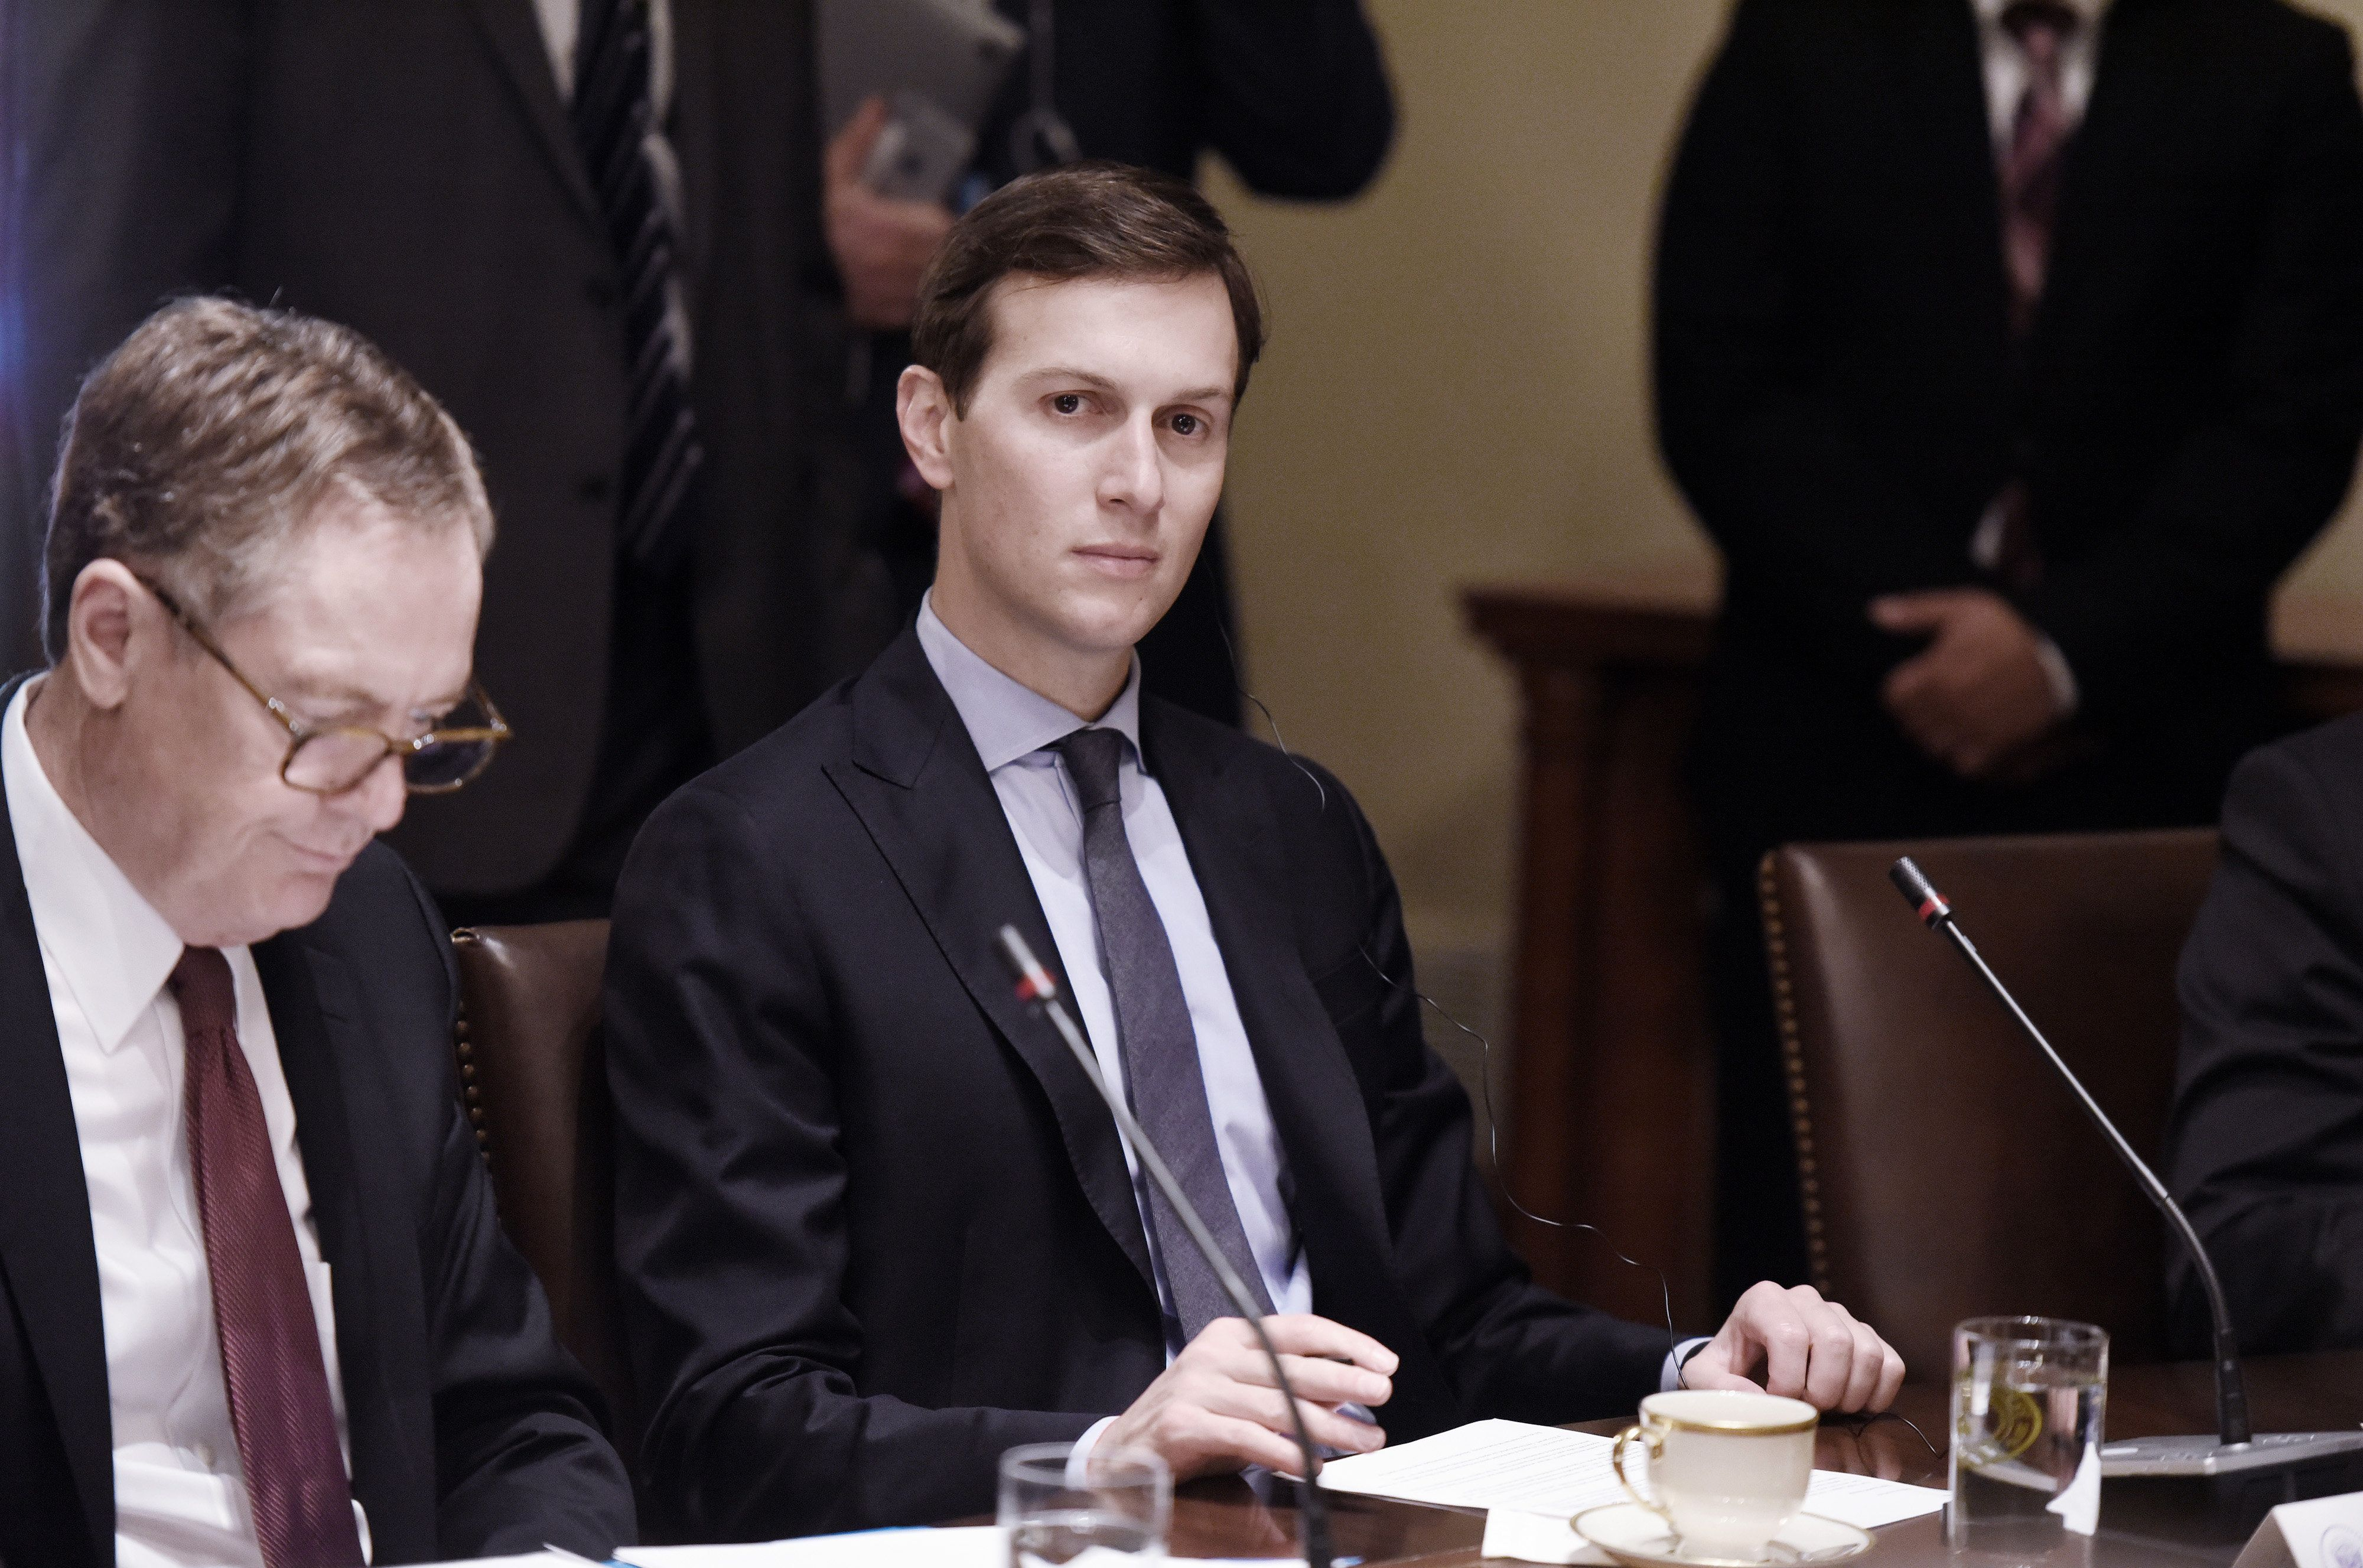 Jared Kushner, senior White House adviser, listens during a meeting with U.S. President Donald Trump and Moon Jae-in, South Korea's president, not pictured, in the Cabinet Room of the White House in Washington, D.C., U.S., on Friday, June 30, 2017. Trump wants South Korea to reduce barriers to U.S. auto exports to the country and is concerned by the 'enormous' amount of surplus steel the U.S. imports from the country, especially shipments that come via China, a White House administration official said this week. Photographer: Olivier Douliery/Pool via Bloomberg